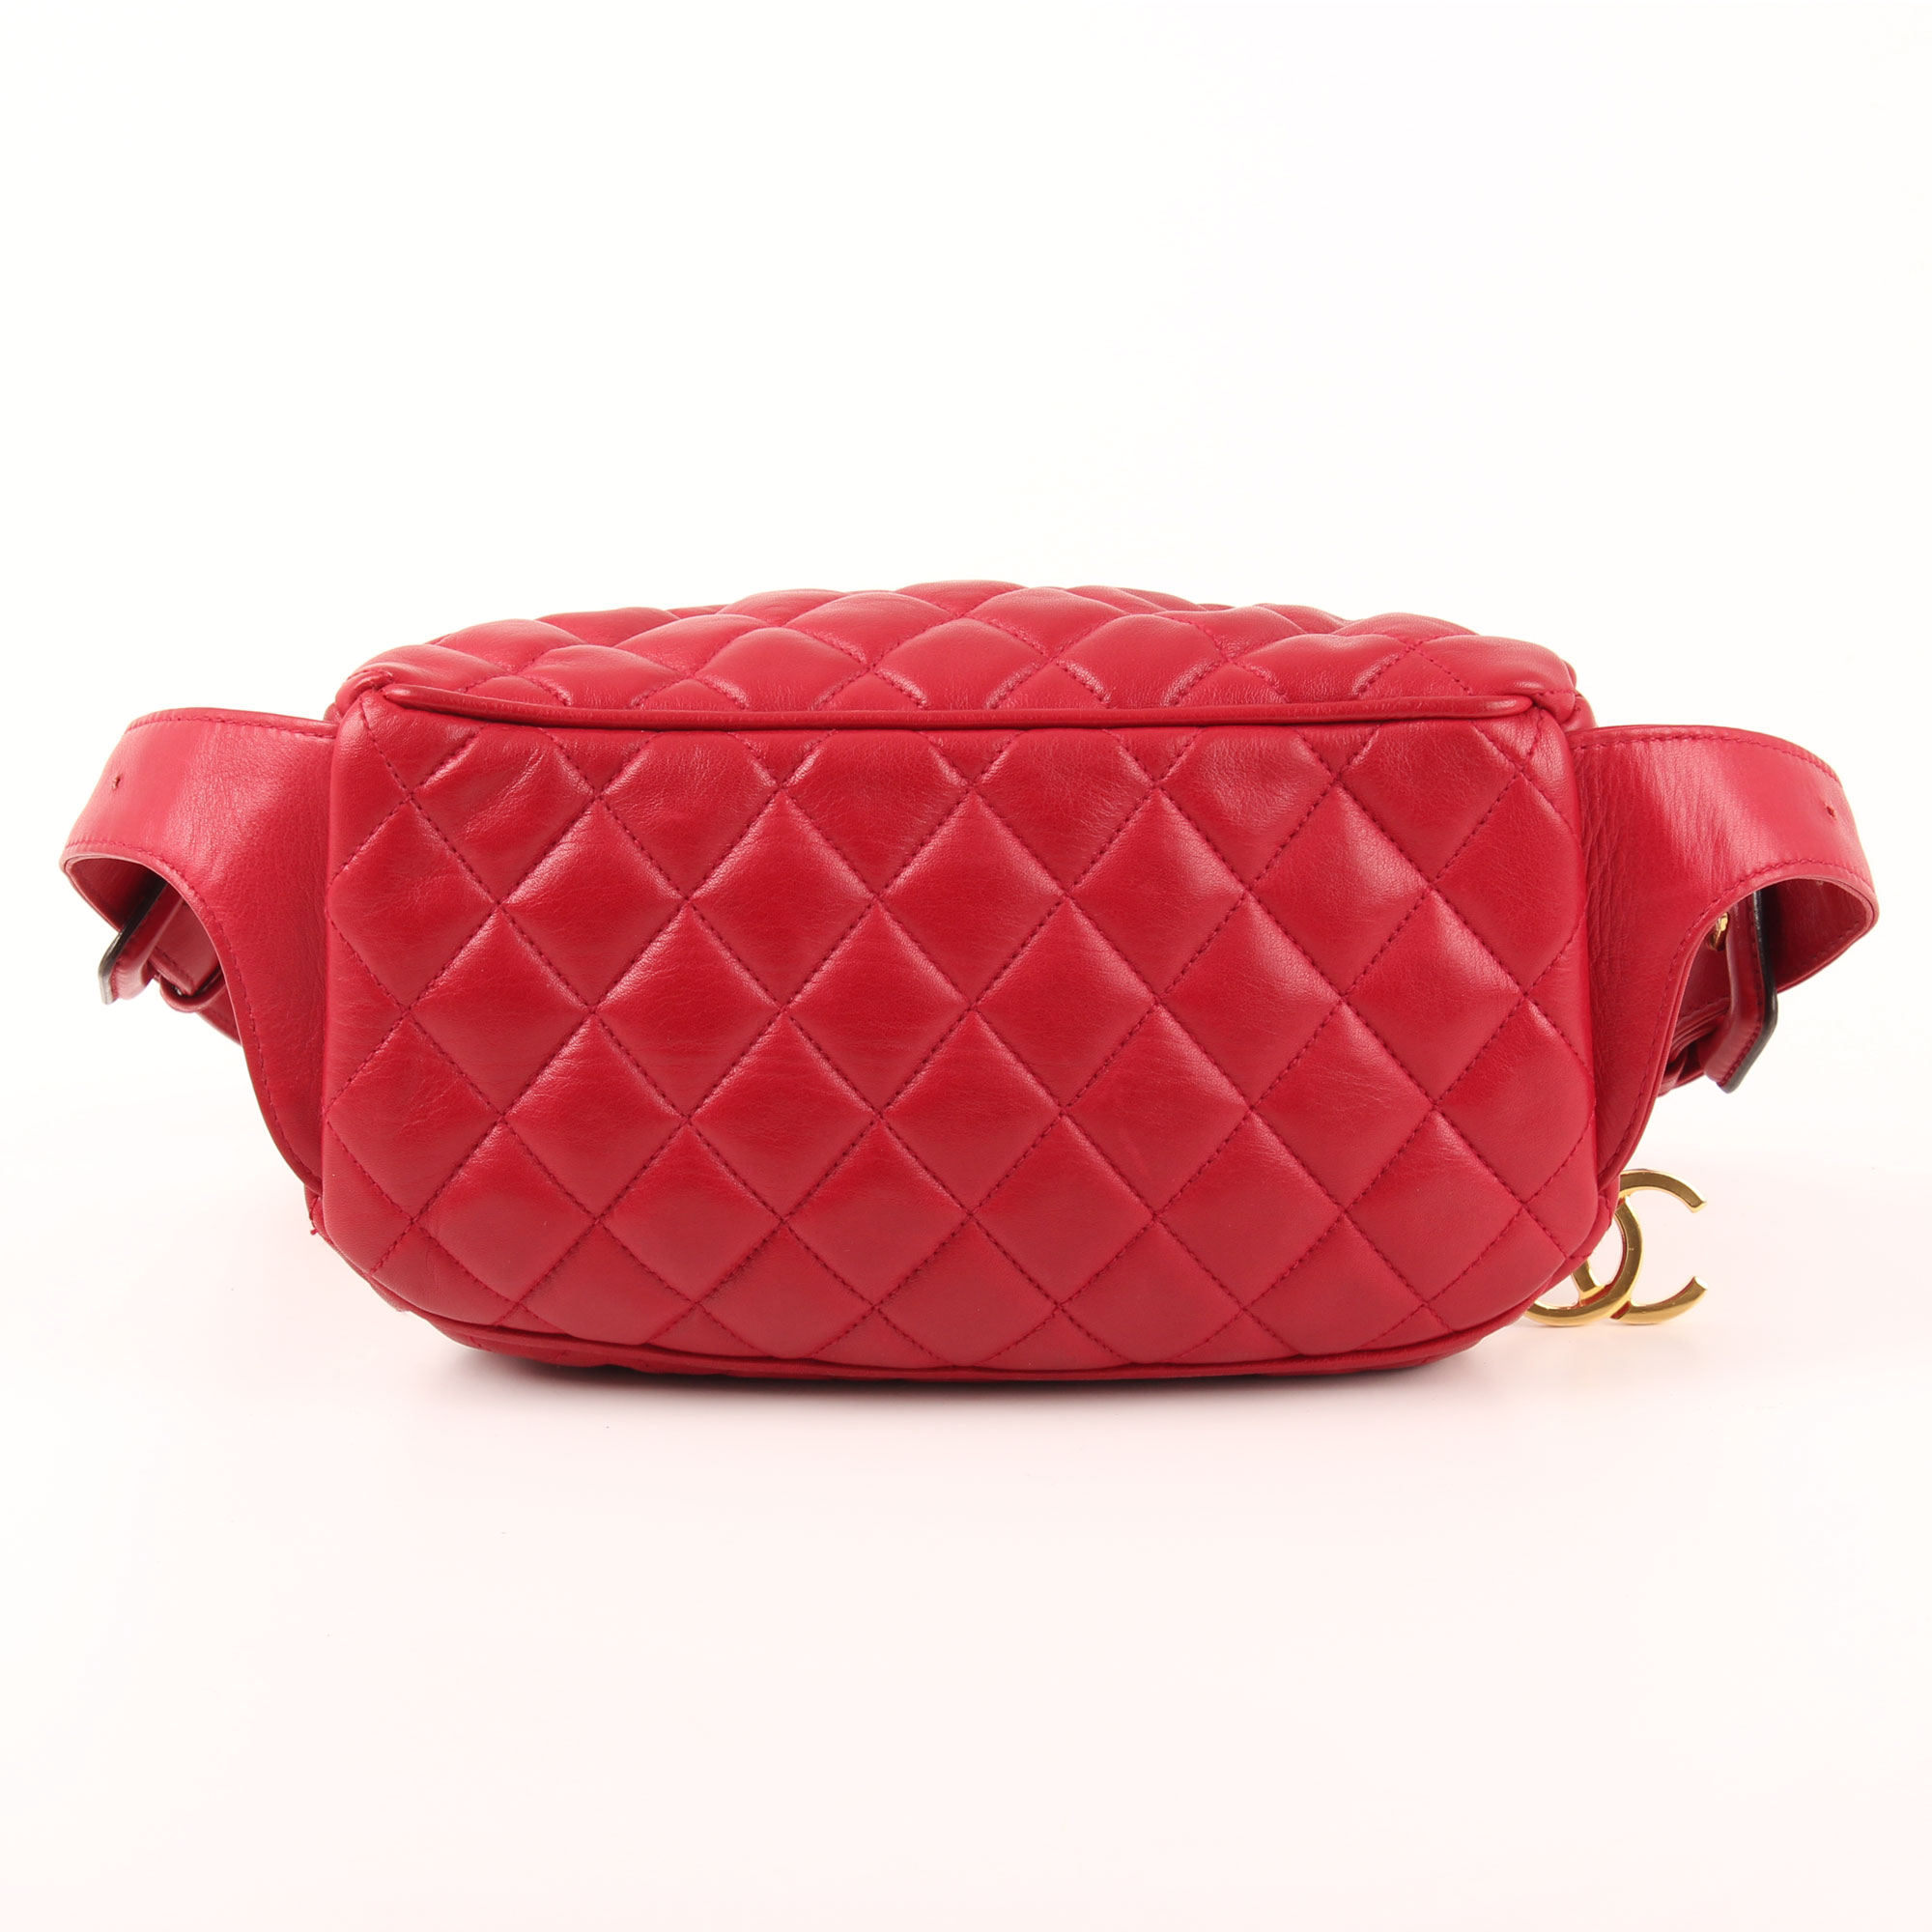 84bce8144 Chanel Belt Pouch Red Retro Fanny Pack I CBL Bags